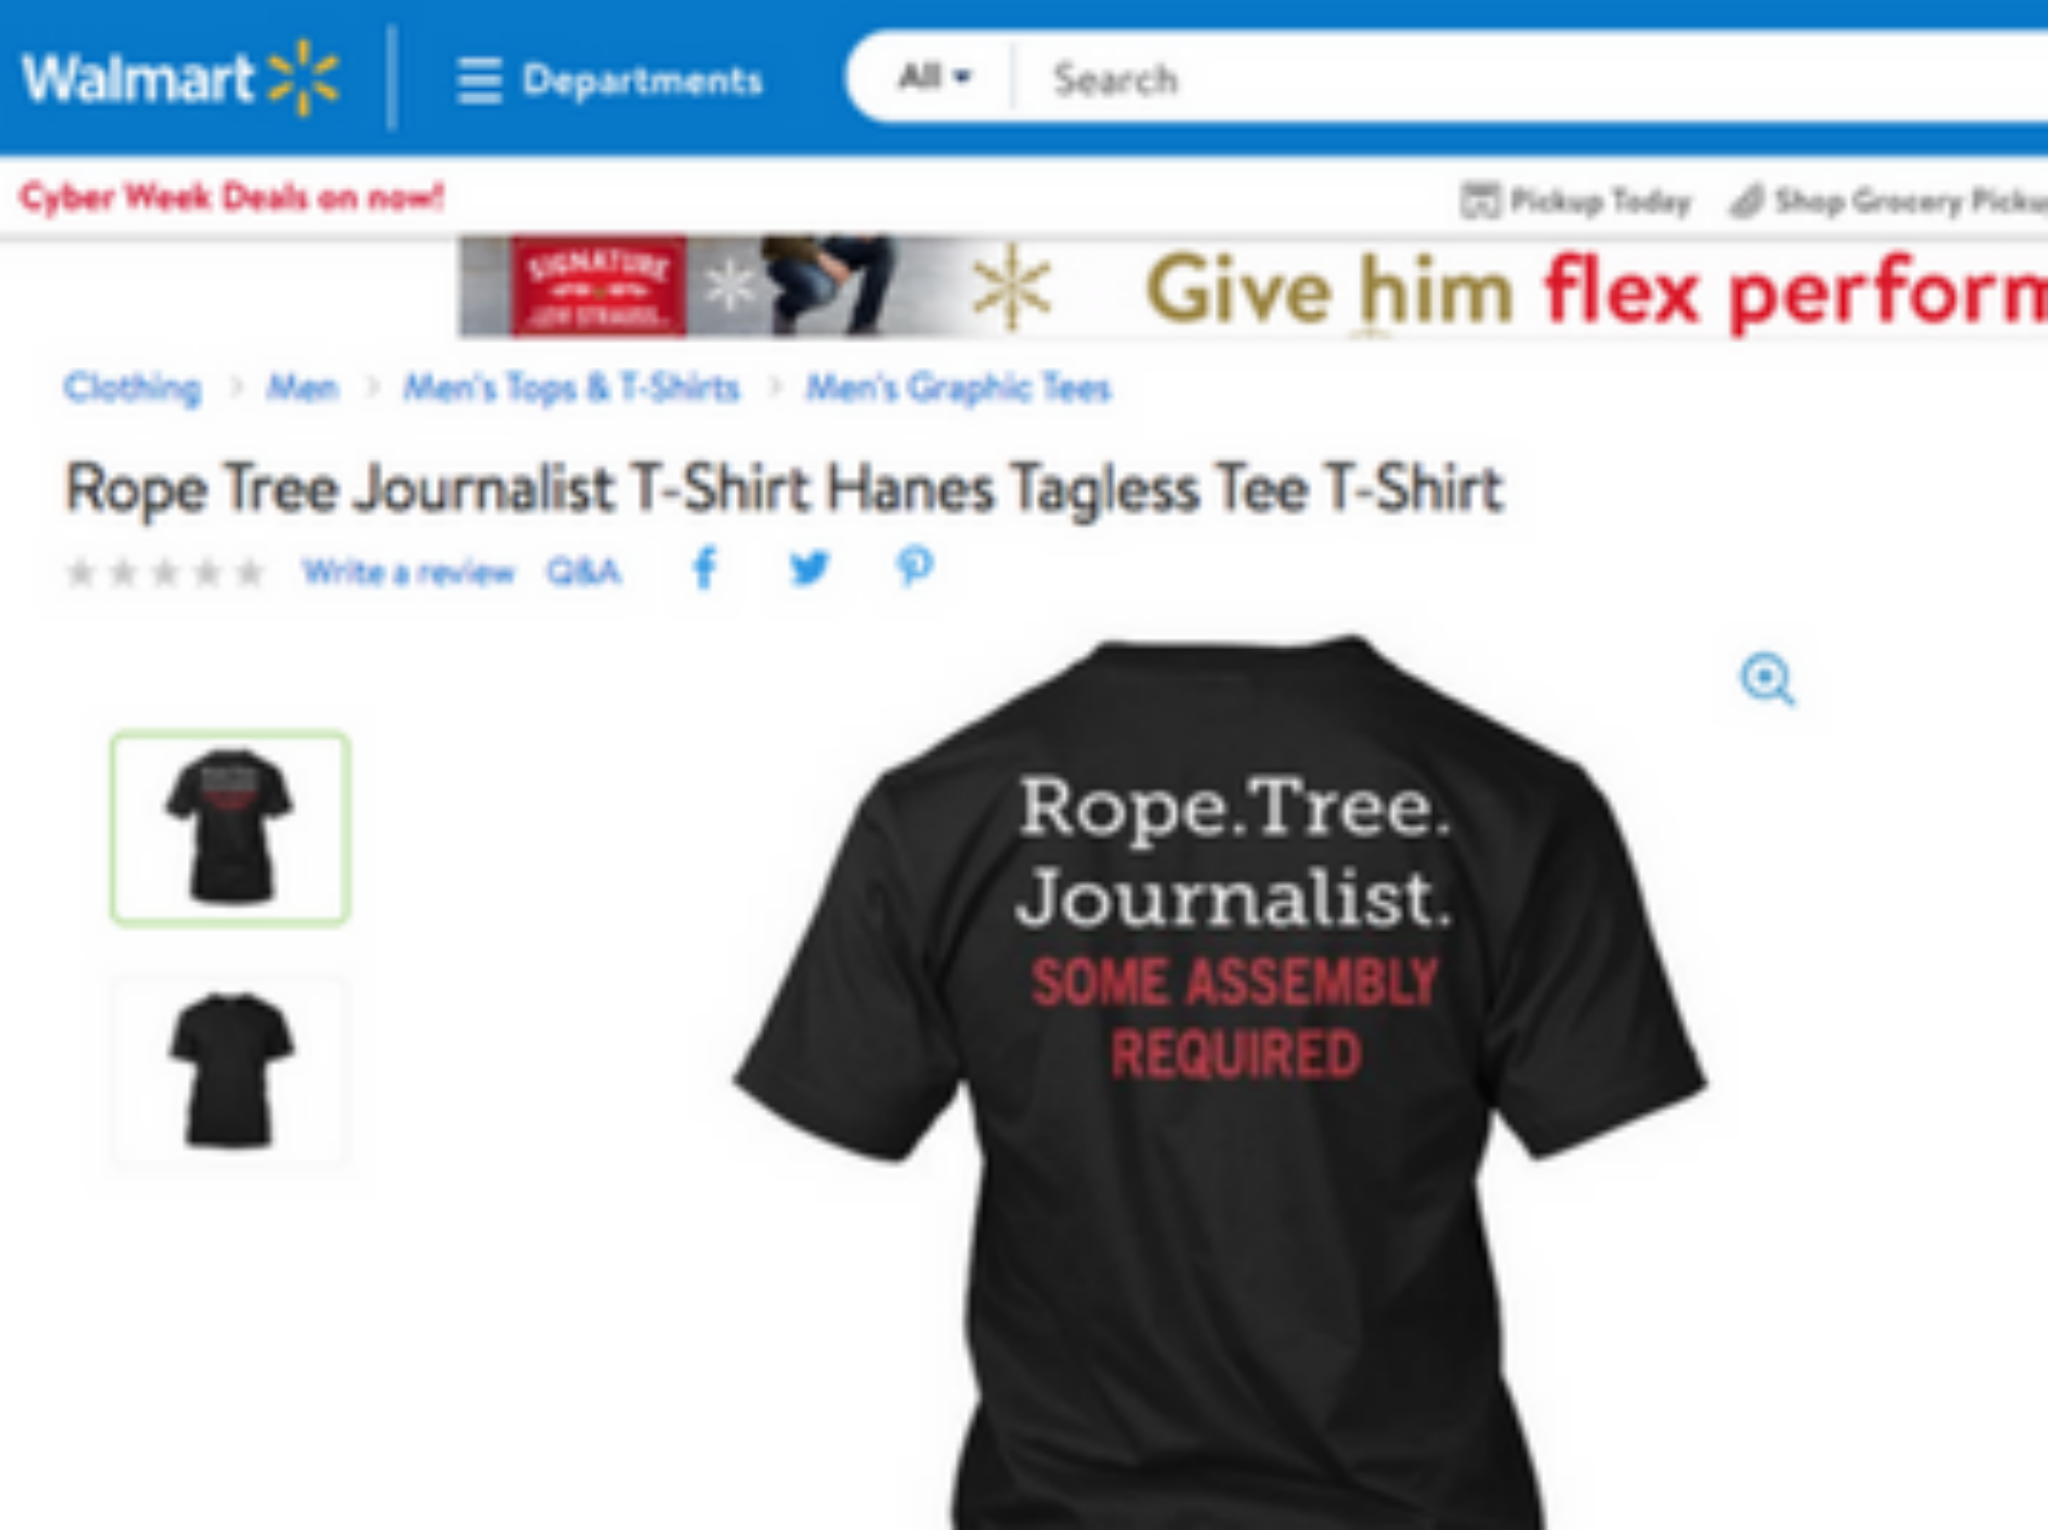 Walmart pulls t-shirt that encourages hanging journalists | The ...